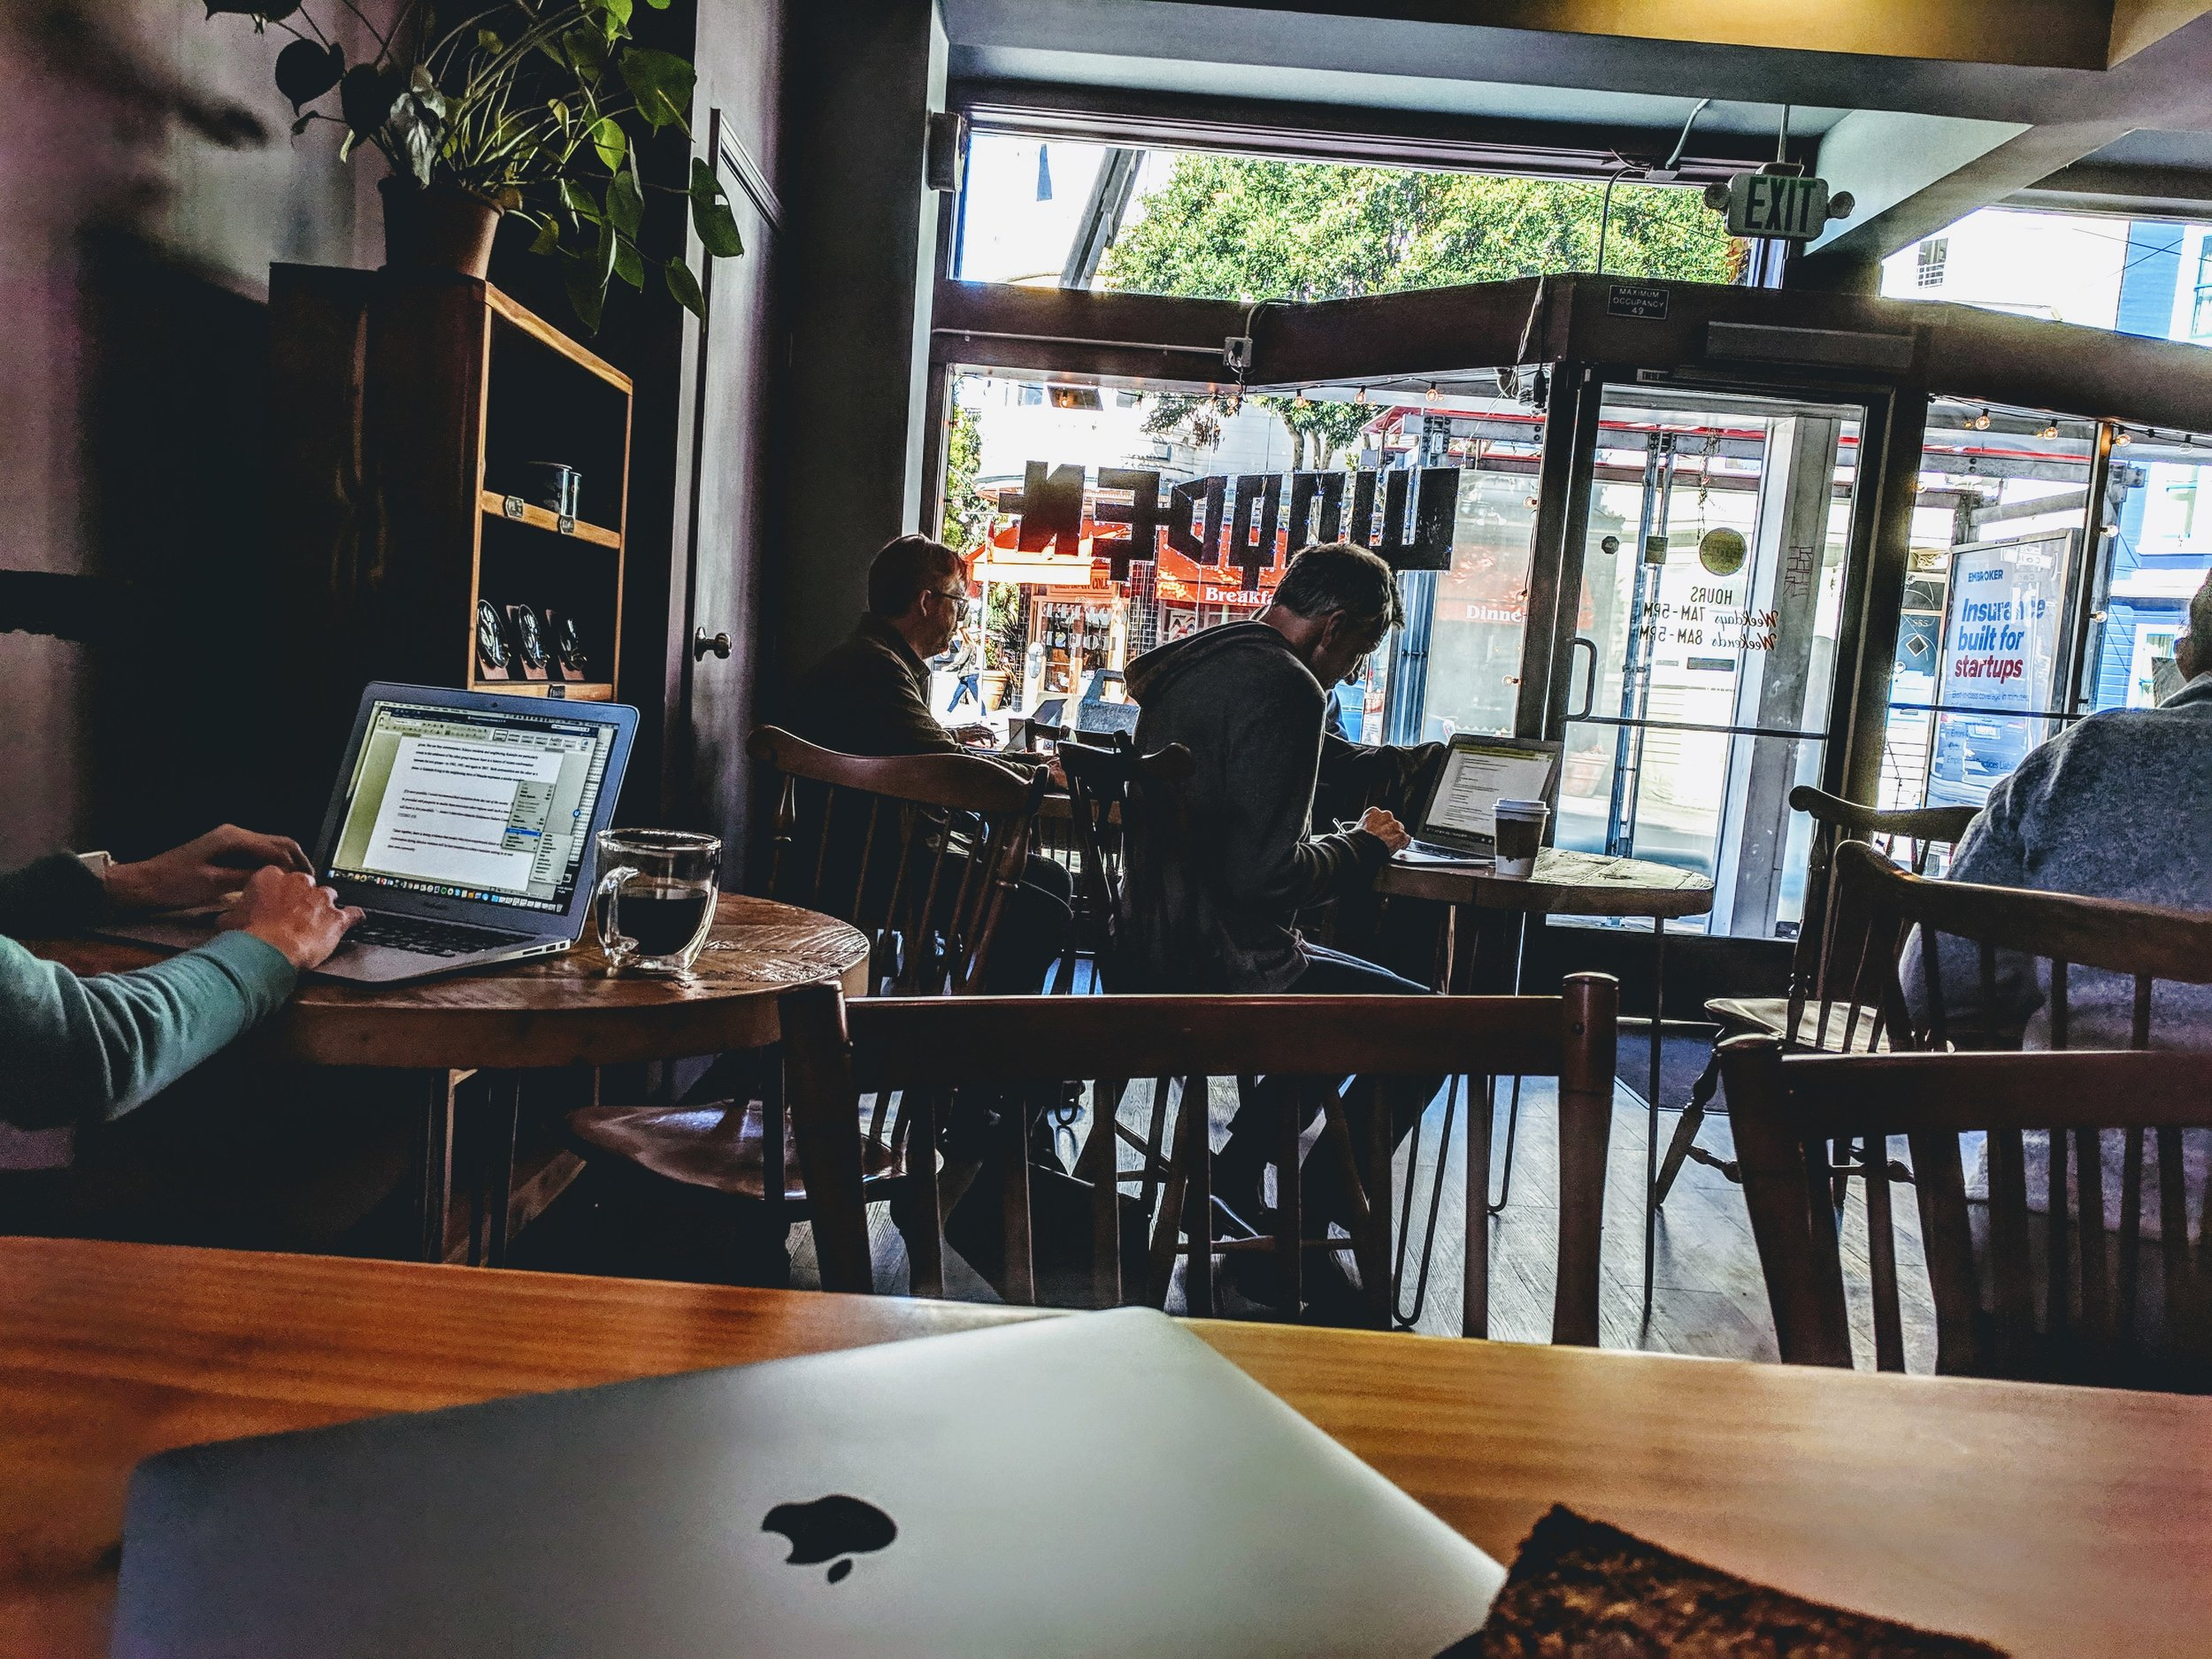 One of my writing meetups in San Francisco, typically in coffeeshops which if you think about it, are watering holes for creatives, artists and writers in the past to gather and do work, critique and exchange ideas